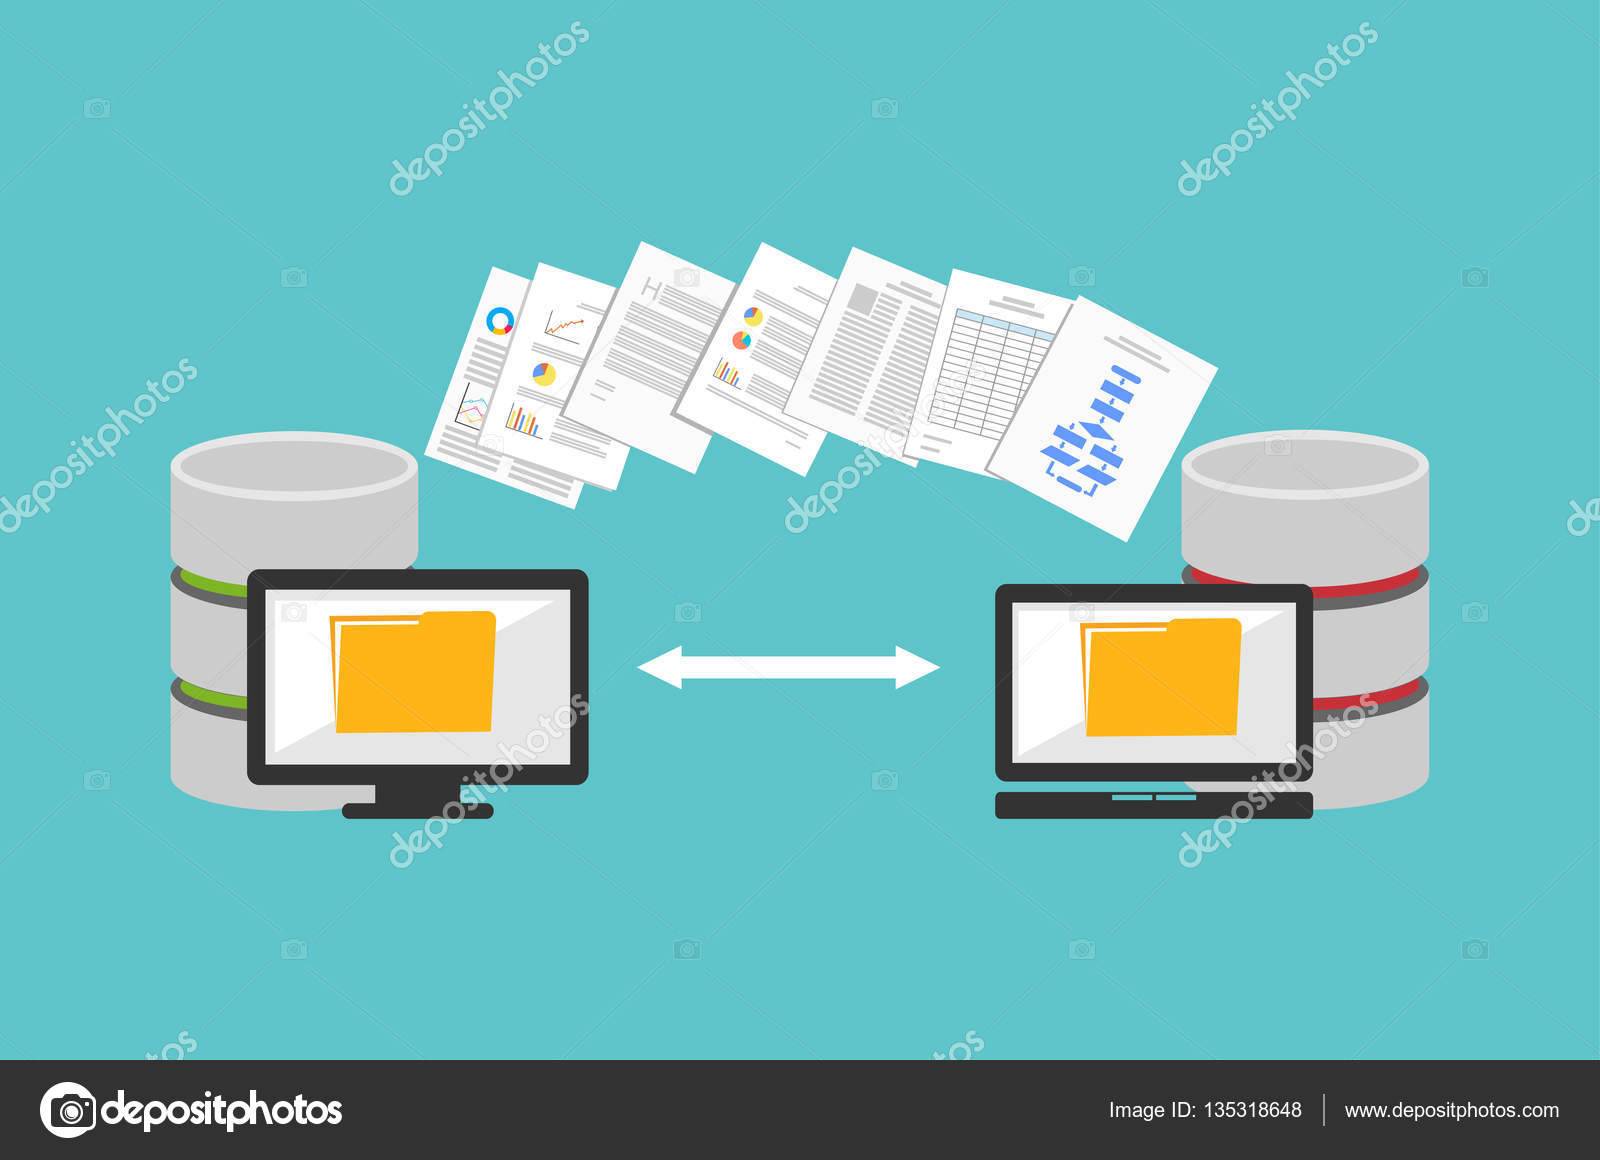 Transfer files. Sharing files. Communication between two computers. — Stock  Vector © pratyaksa #135318648